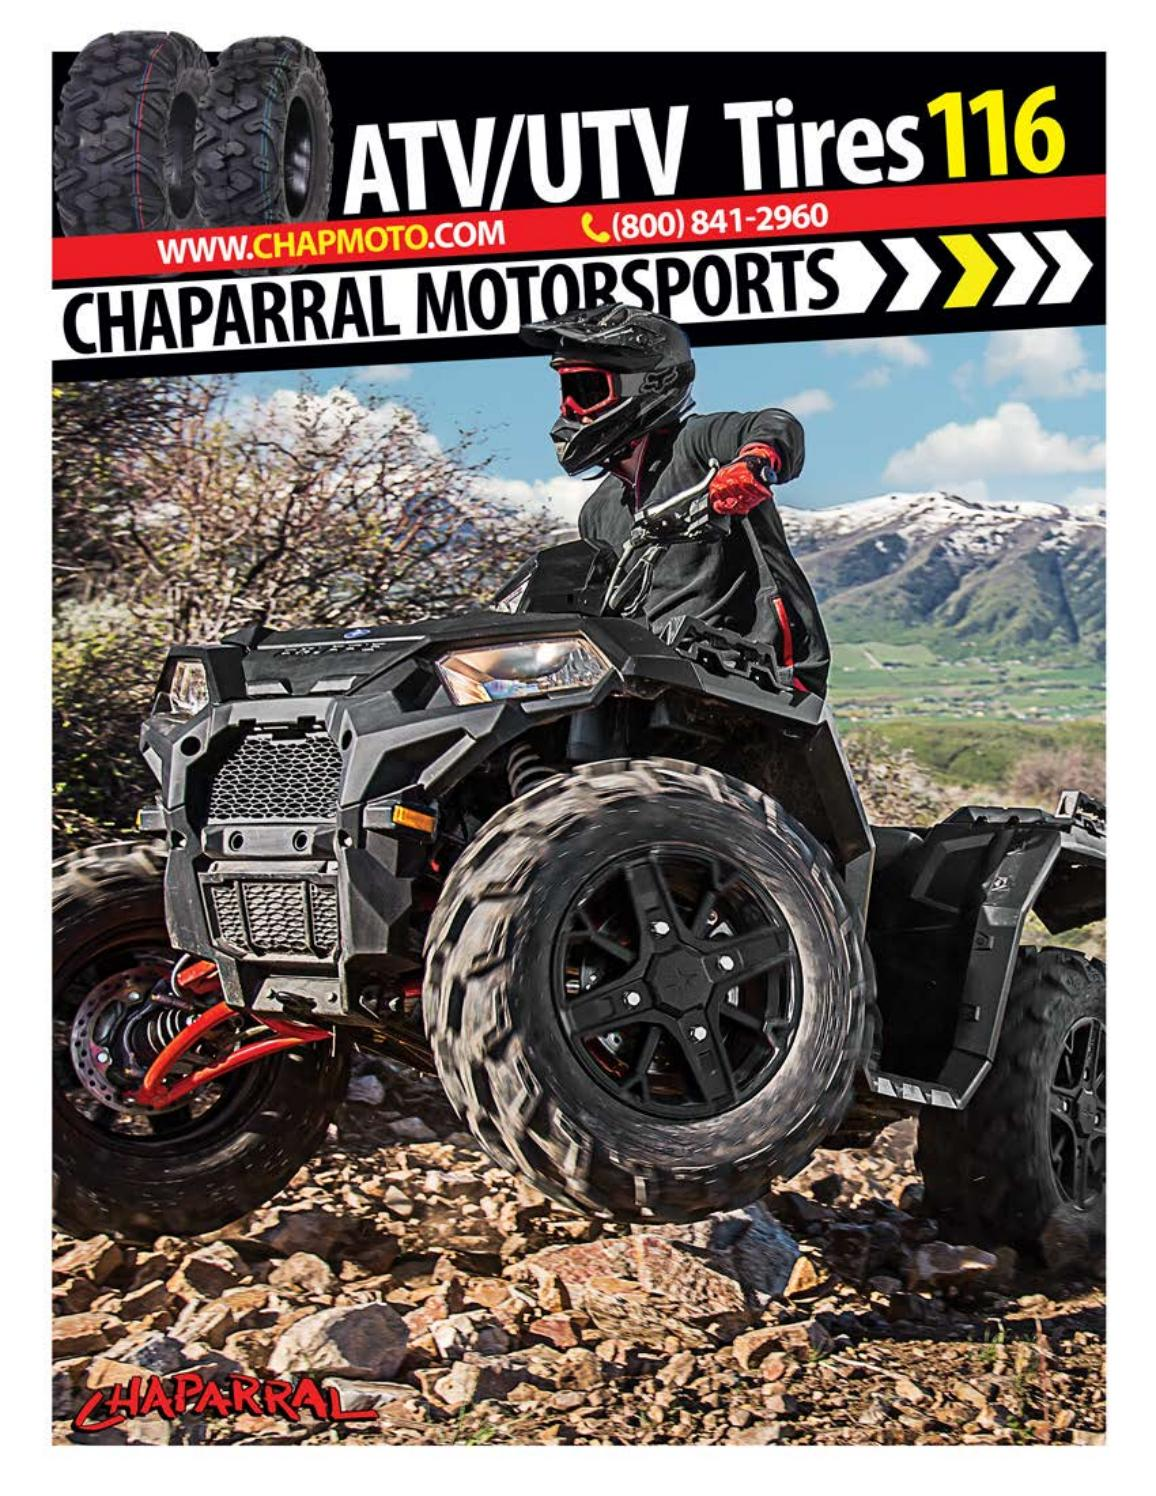 Motorcycle Chaparral Store